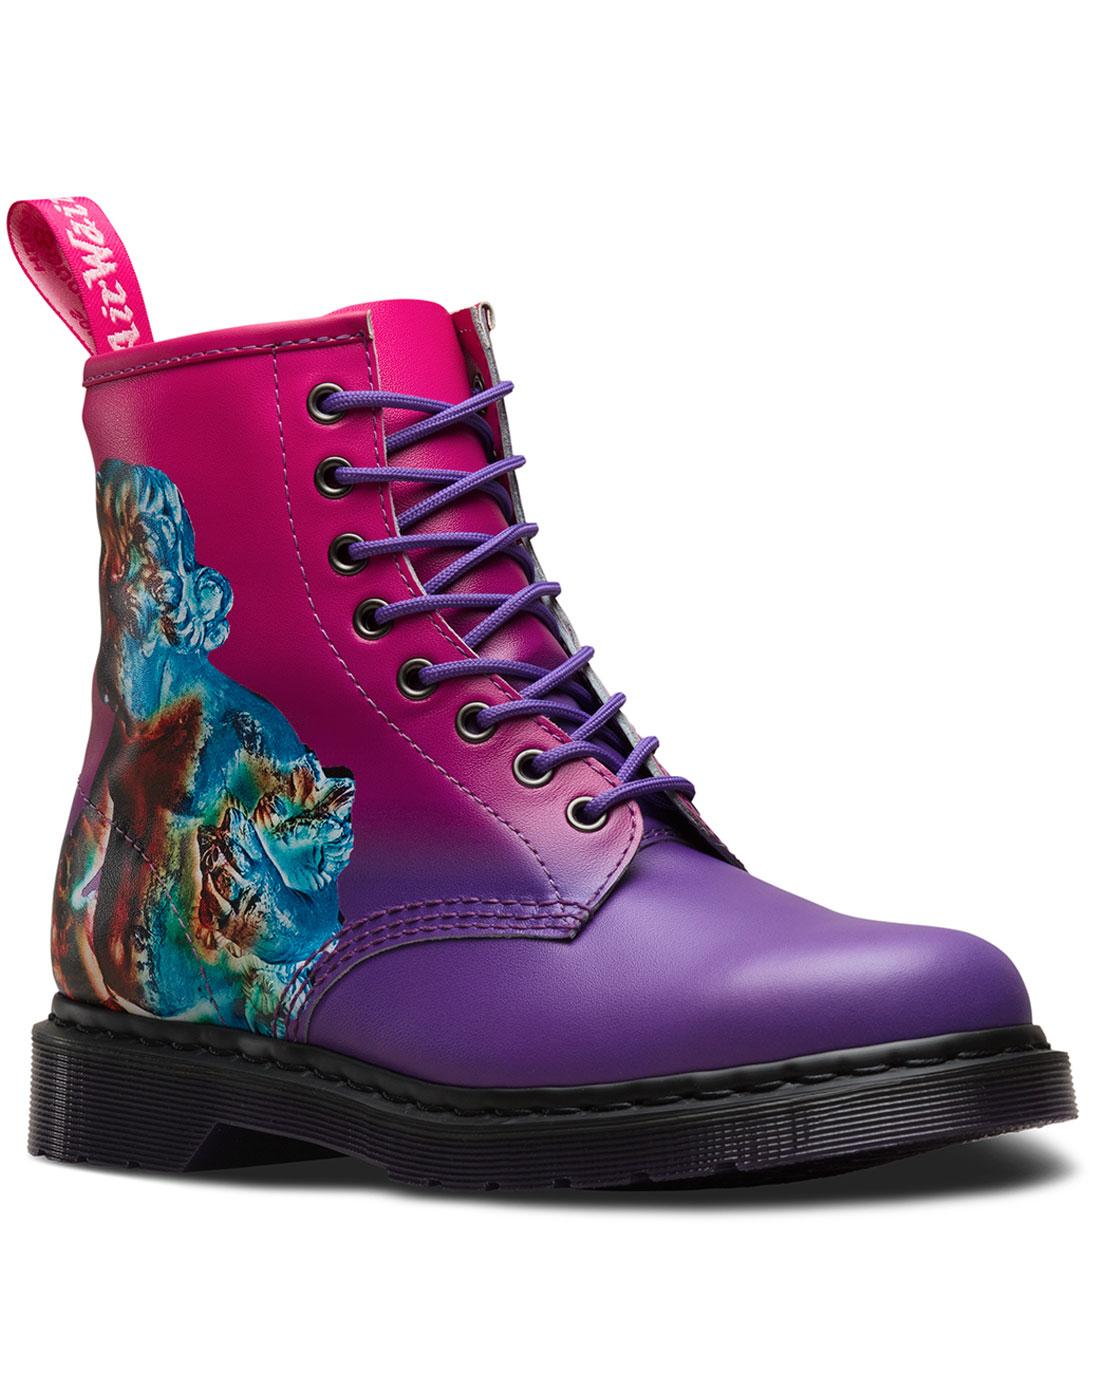 DR MARTENS x NEW ORDER 1460 Technique 80s Boots